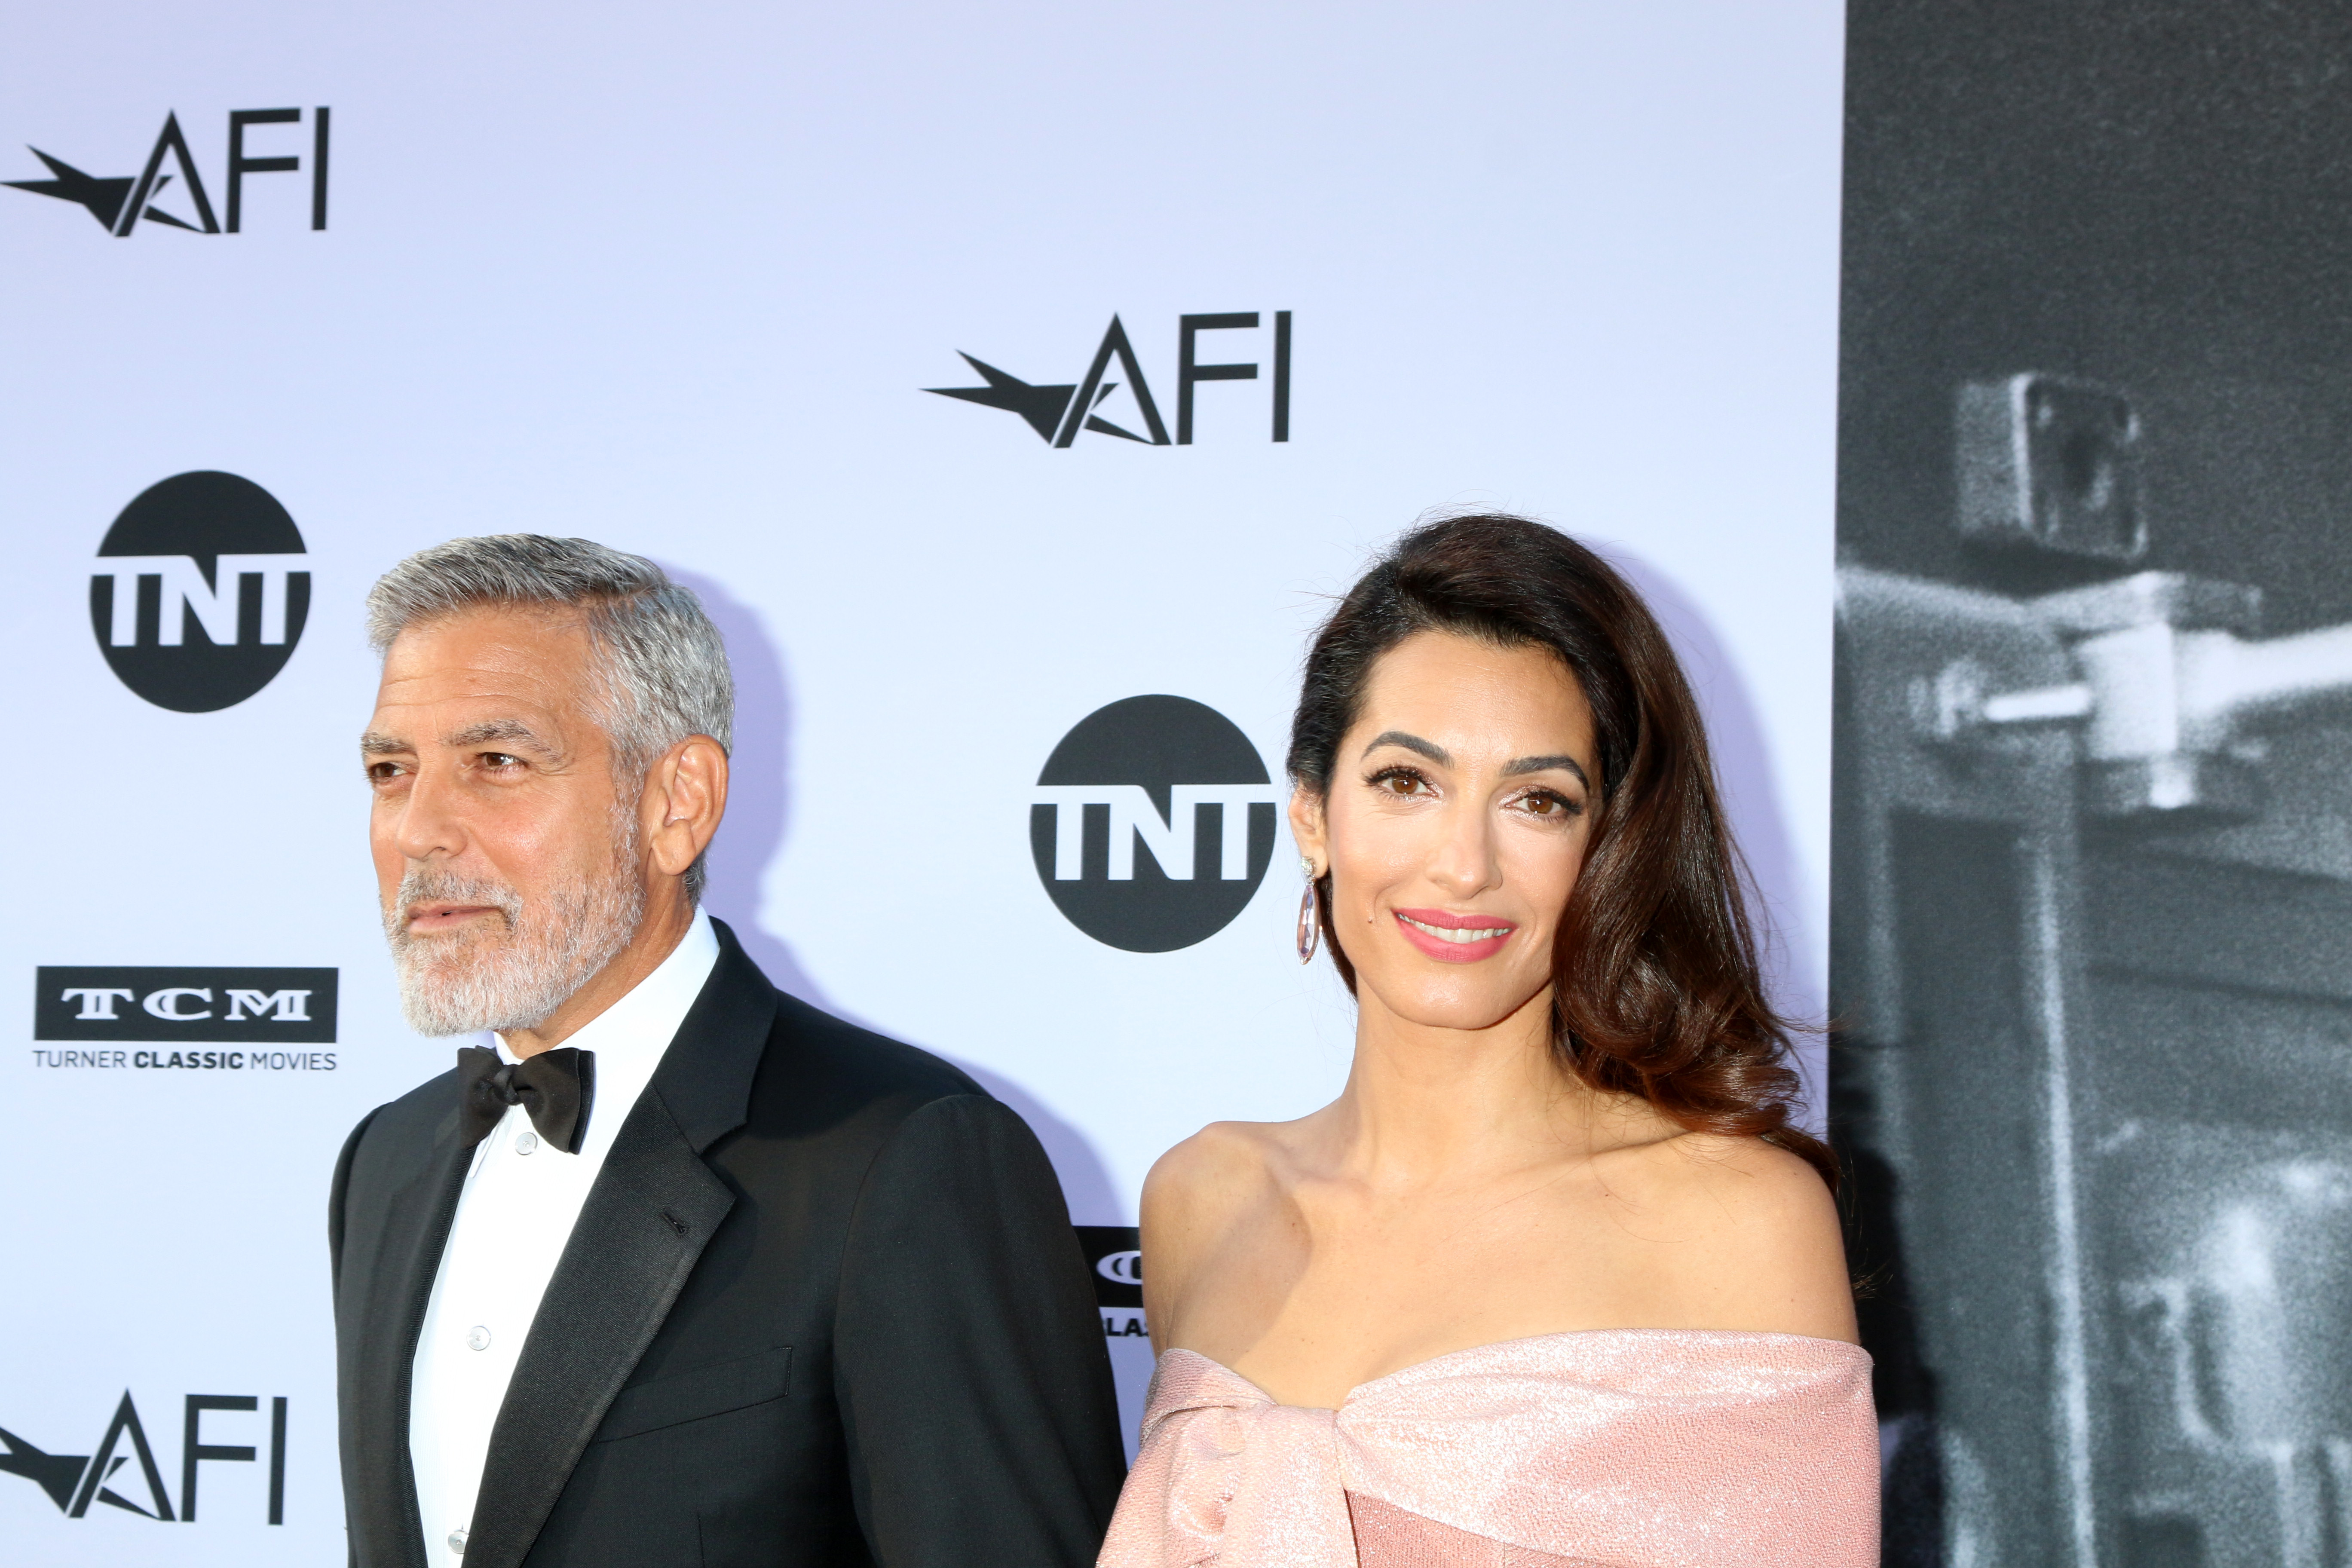 George Clooney and Amal Clooney at the 46th AFI Life Achievement Awards in Los Angeles, California on June 8, 2018. (Nicky Nelson/WENN.com)